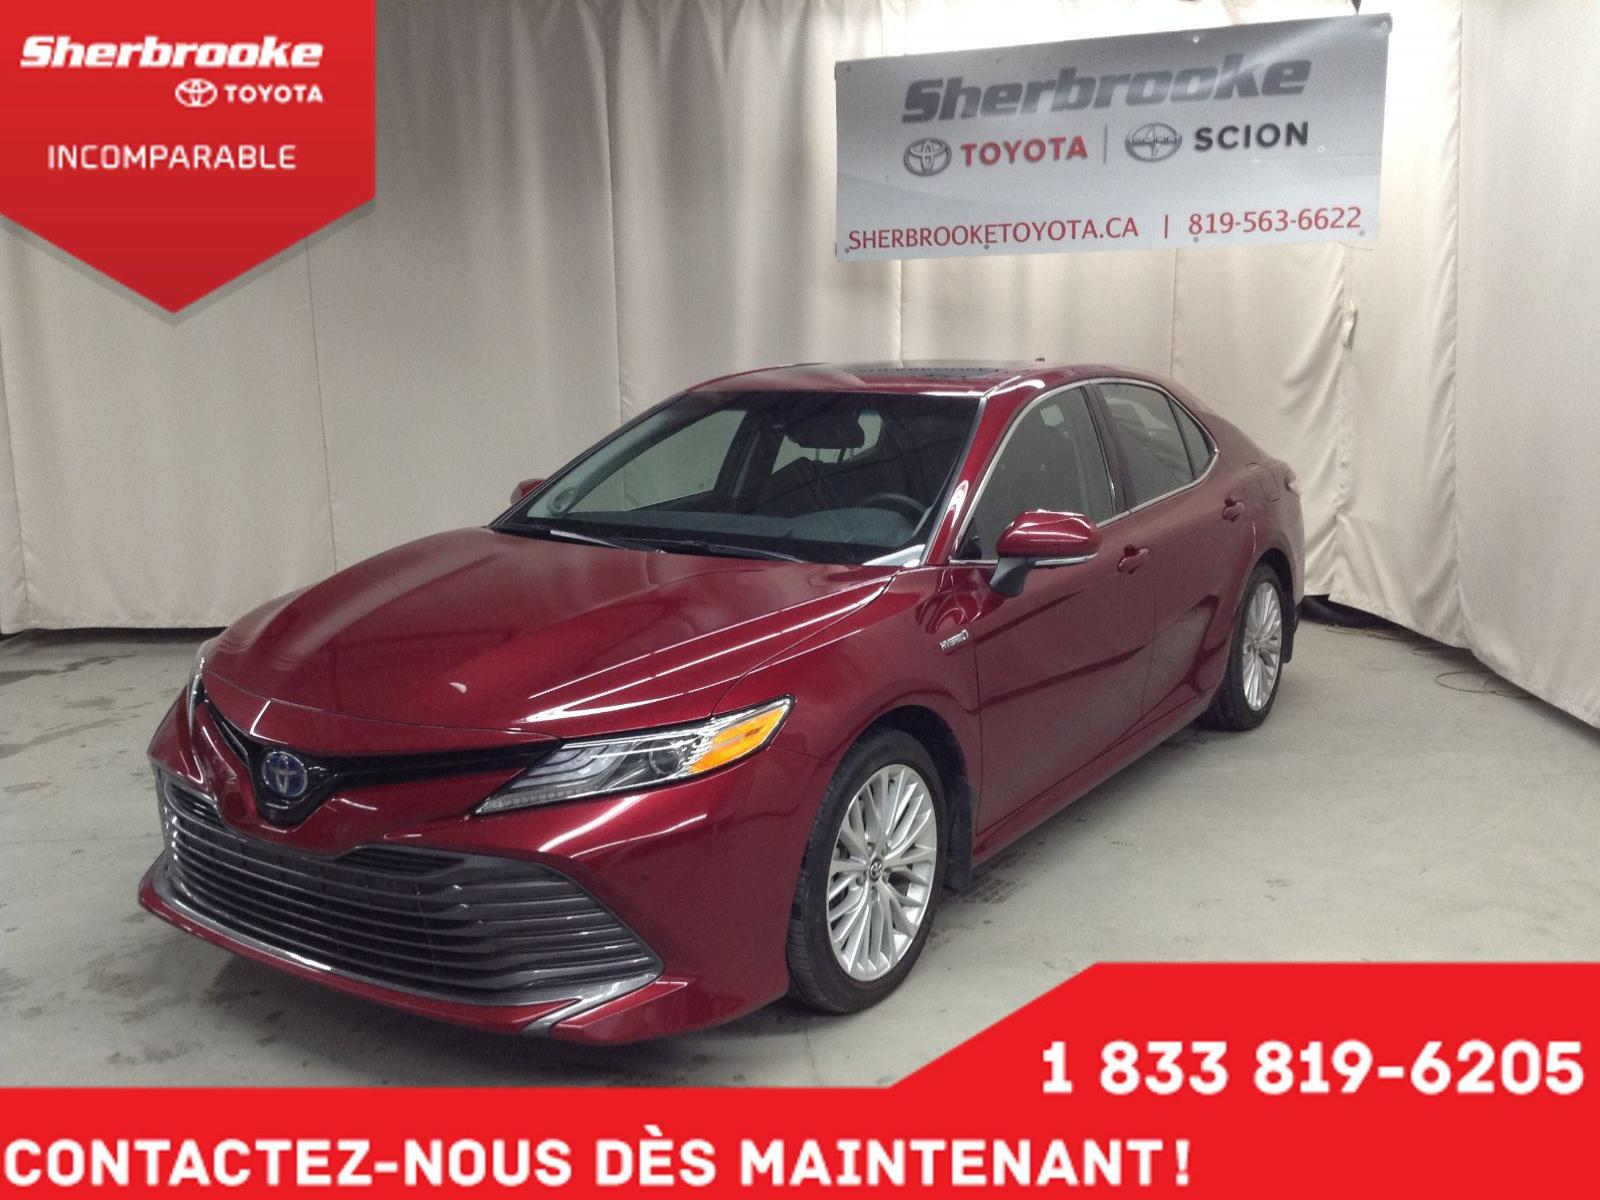 Used 2018 Toyota Camry in Sherbrooke,QC